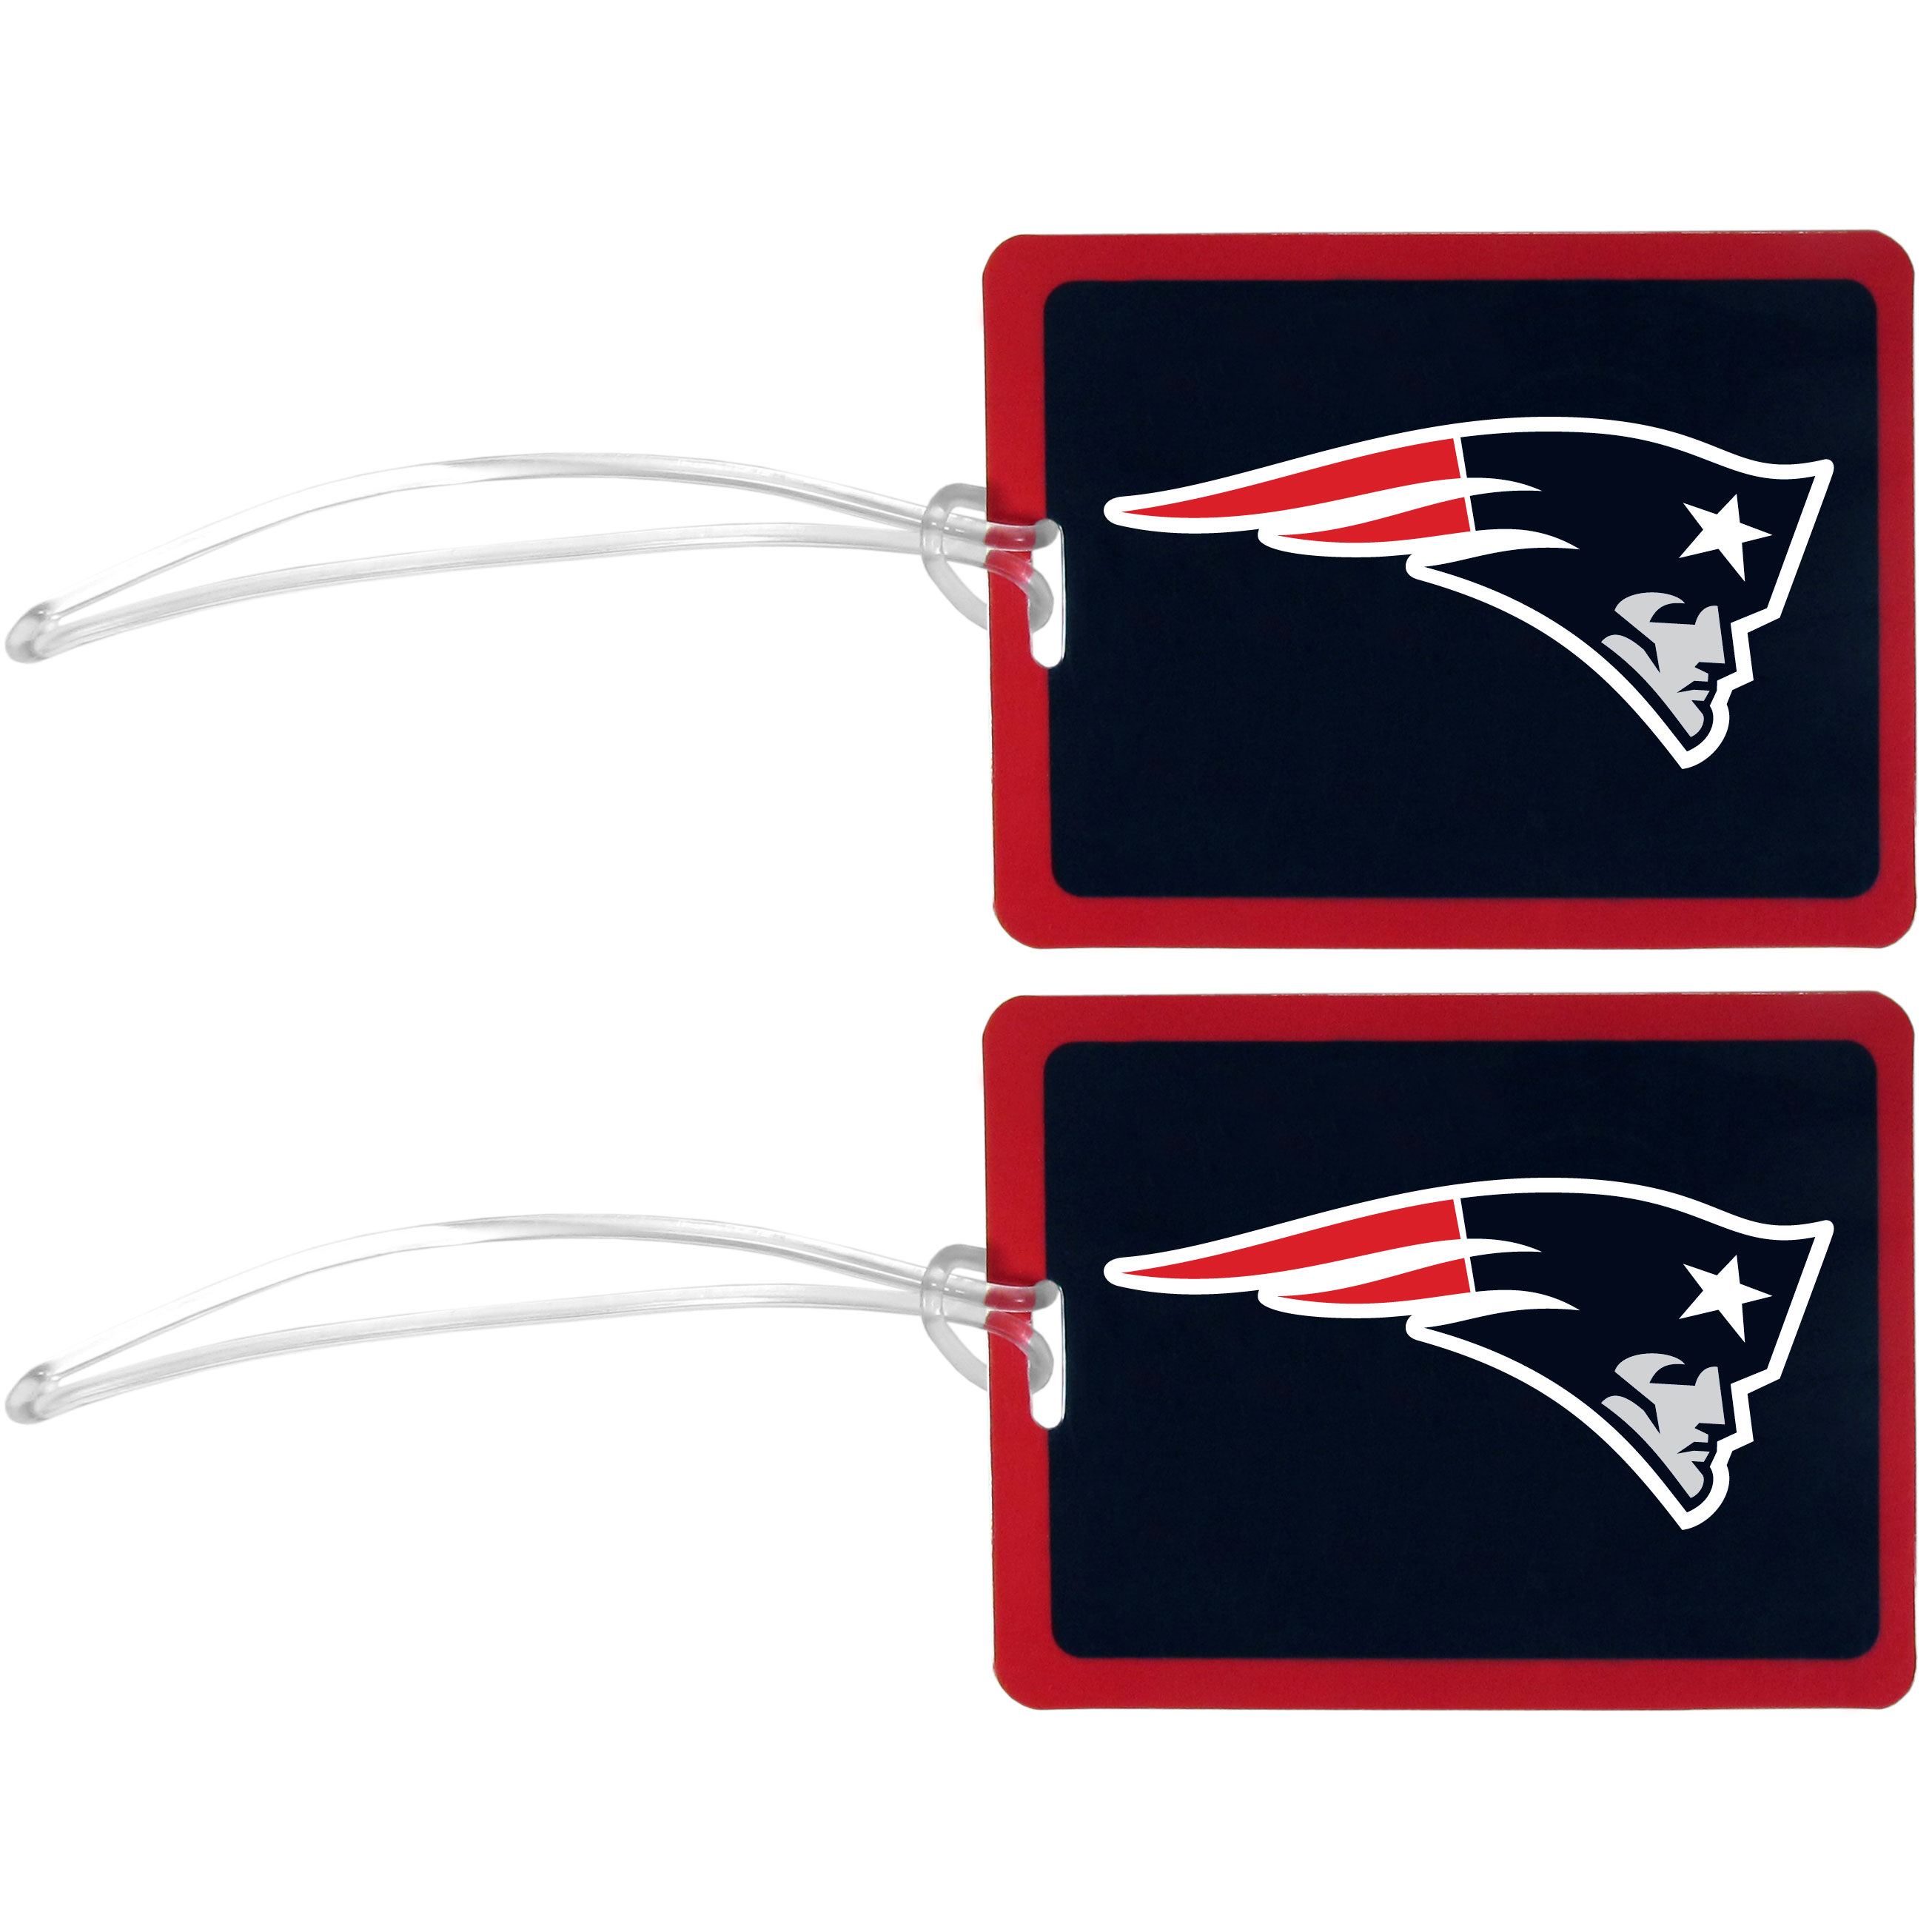 New England Patriots Vinyl Luggage Tag, 2pk - Tired of trying to spot your suitcase or bag in a sea of luggage? Try our large and colorful New England Patriots luggage tags. The tag is 4x3 inches and has a 5 inch cord to attach it easily to your bags, backpacks or luggage. The front of the tag features the team logo in a bright, team colored background and you can write you name, address and phone number on the back of the tag.